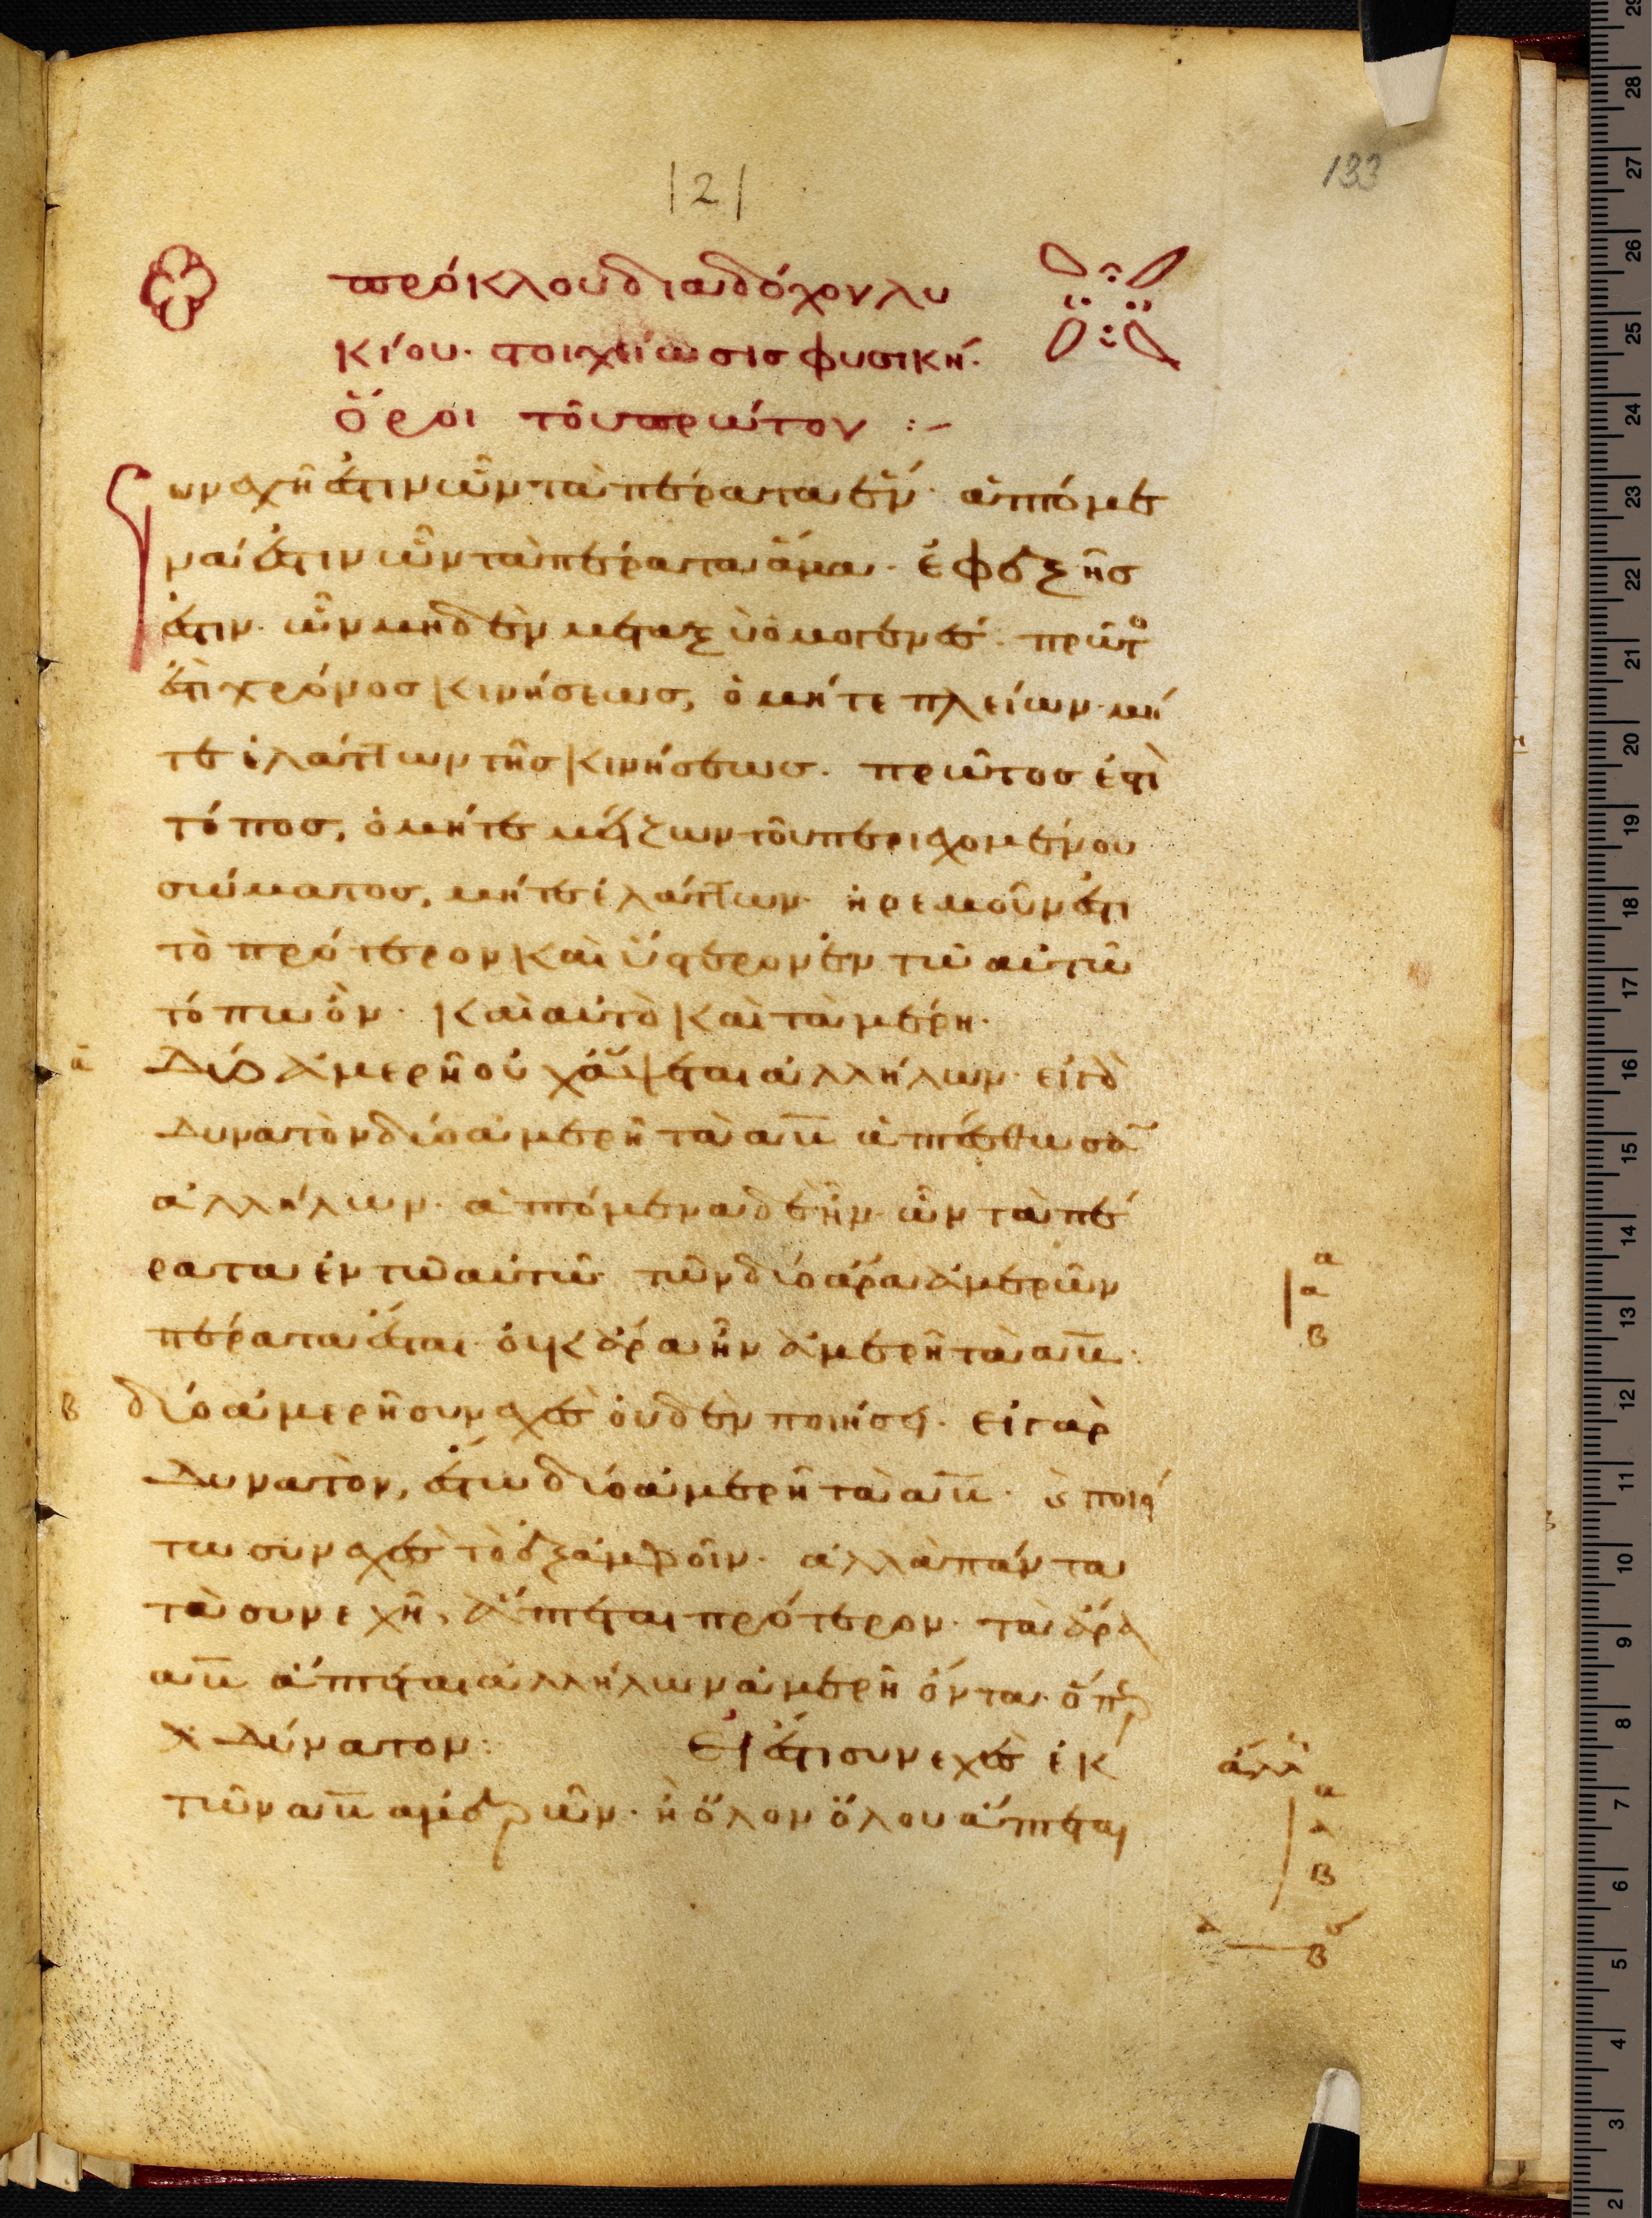 The beginning of Proclus' ''Fundamentals of Physics'' in the manuscript London, British Library, Harley 5685, fol. 133r (12th century)